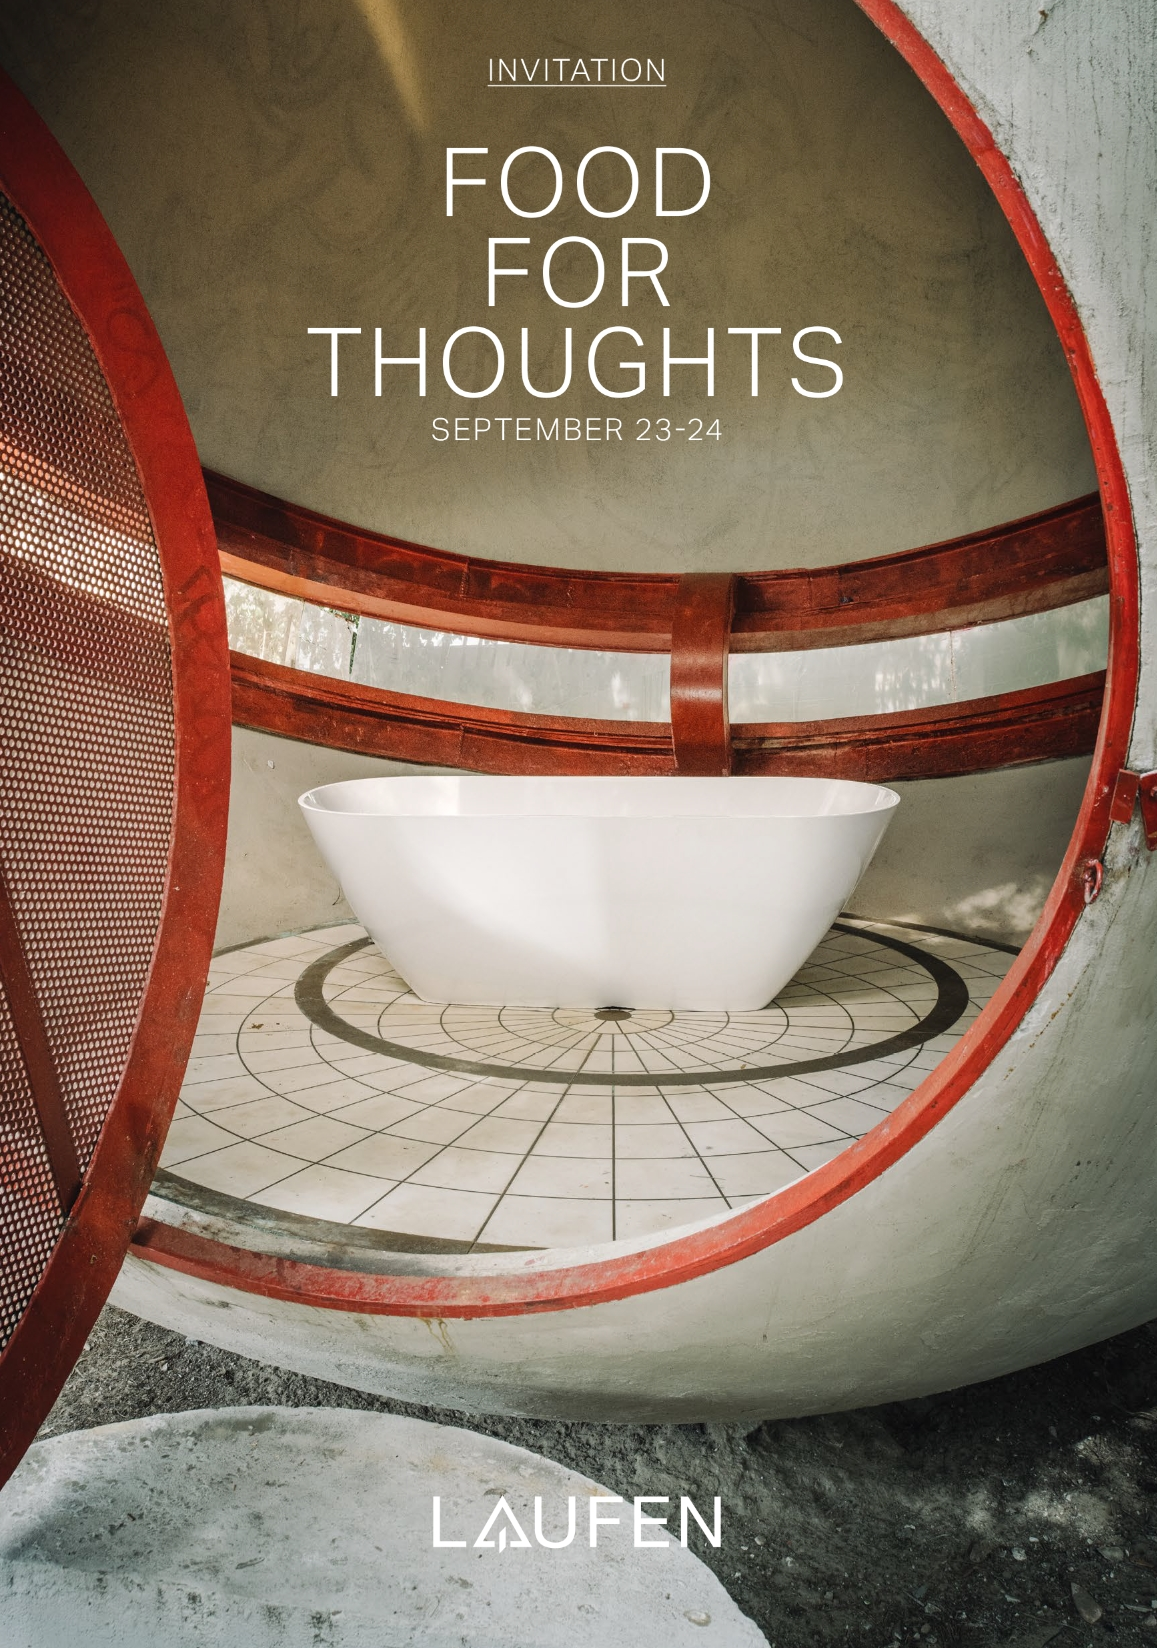 LAUFEN-Lua-Food for thoughts 01